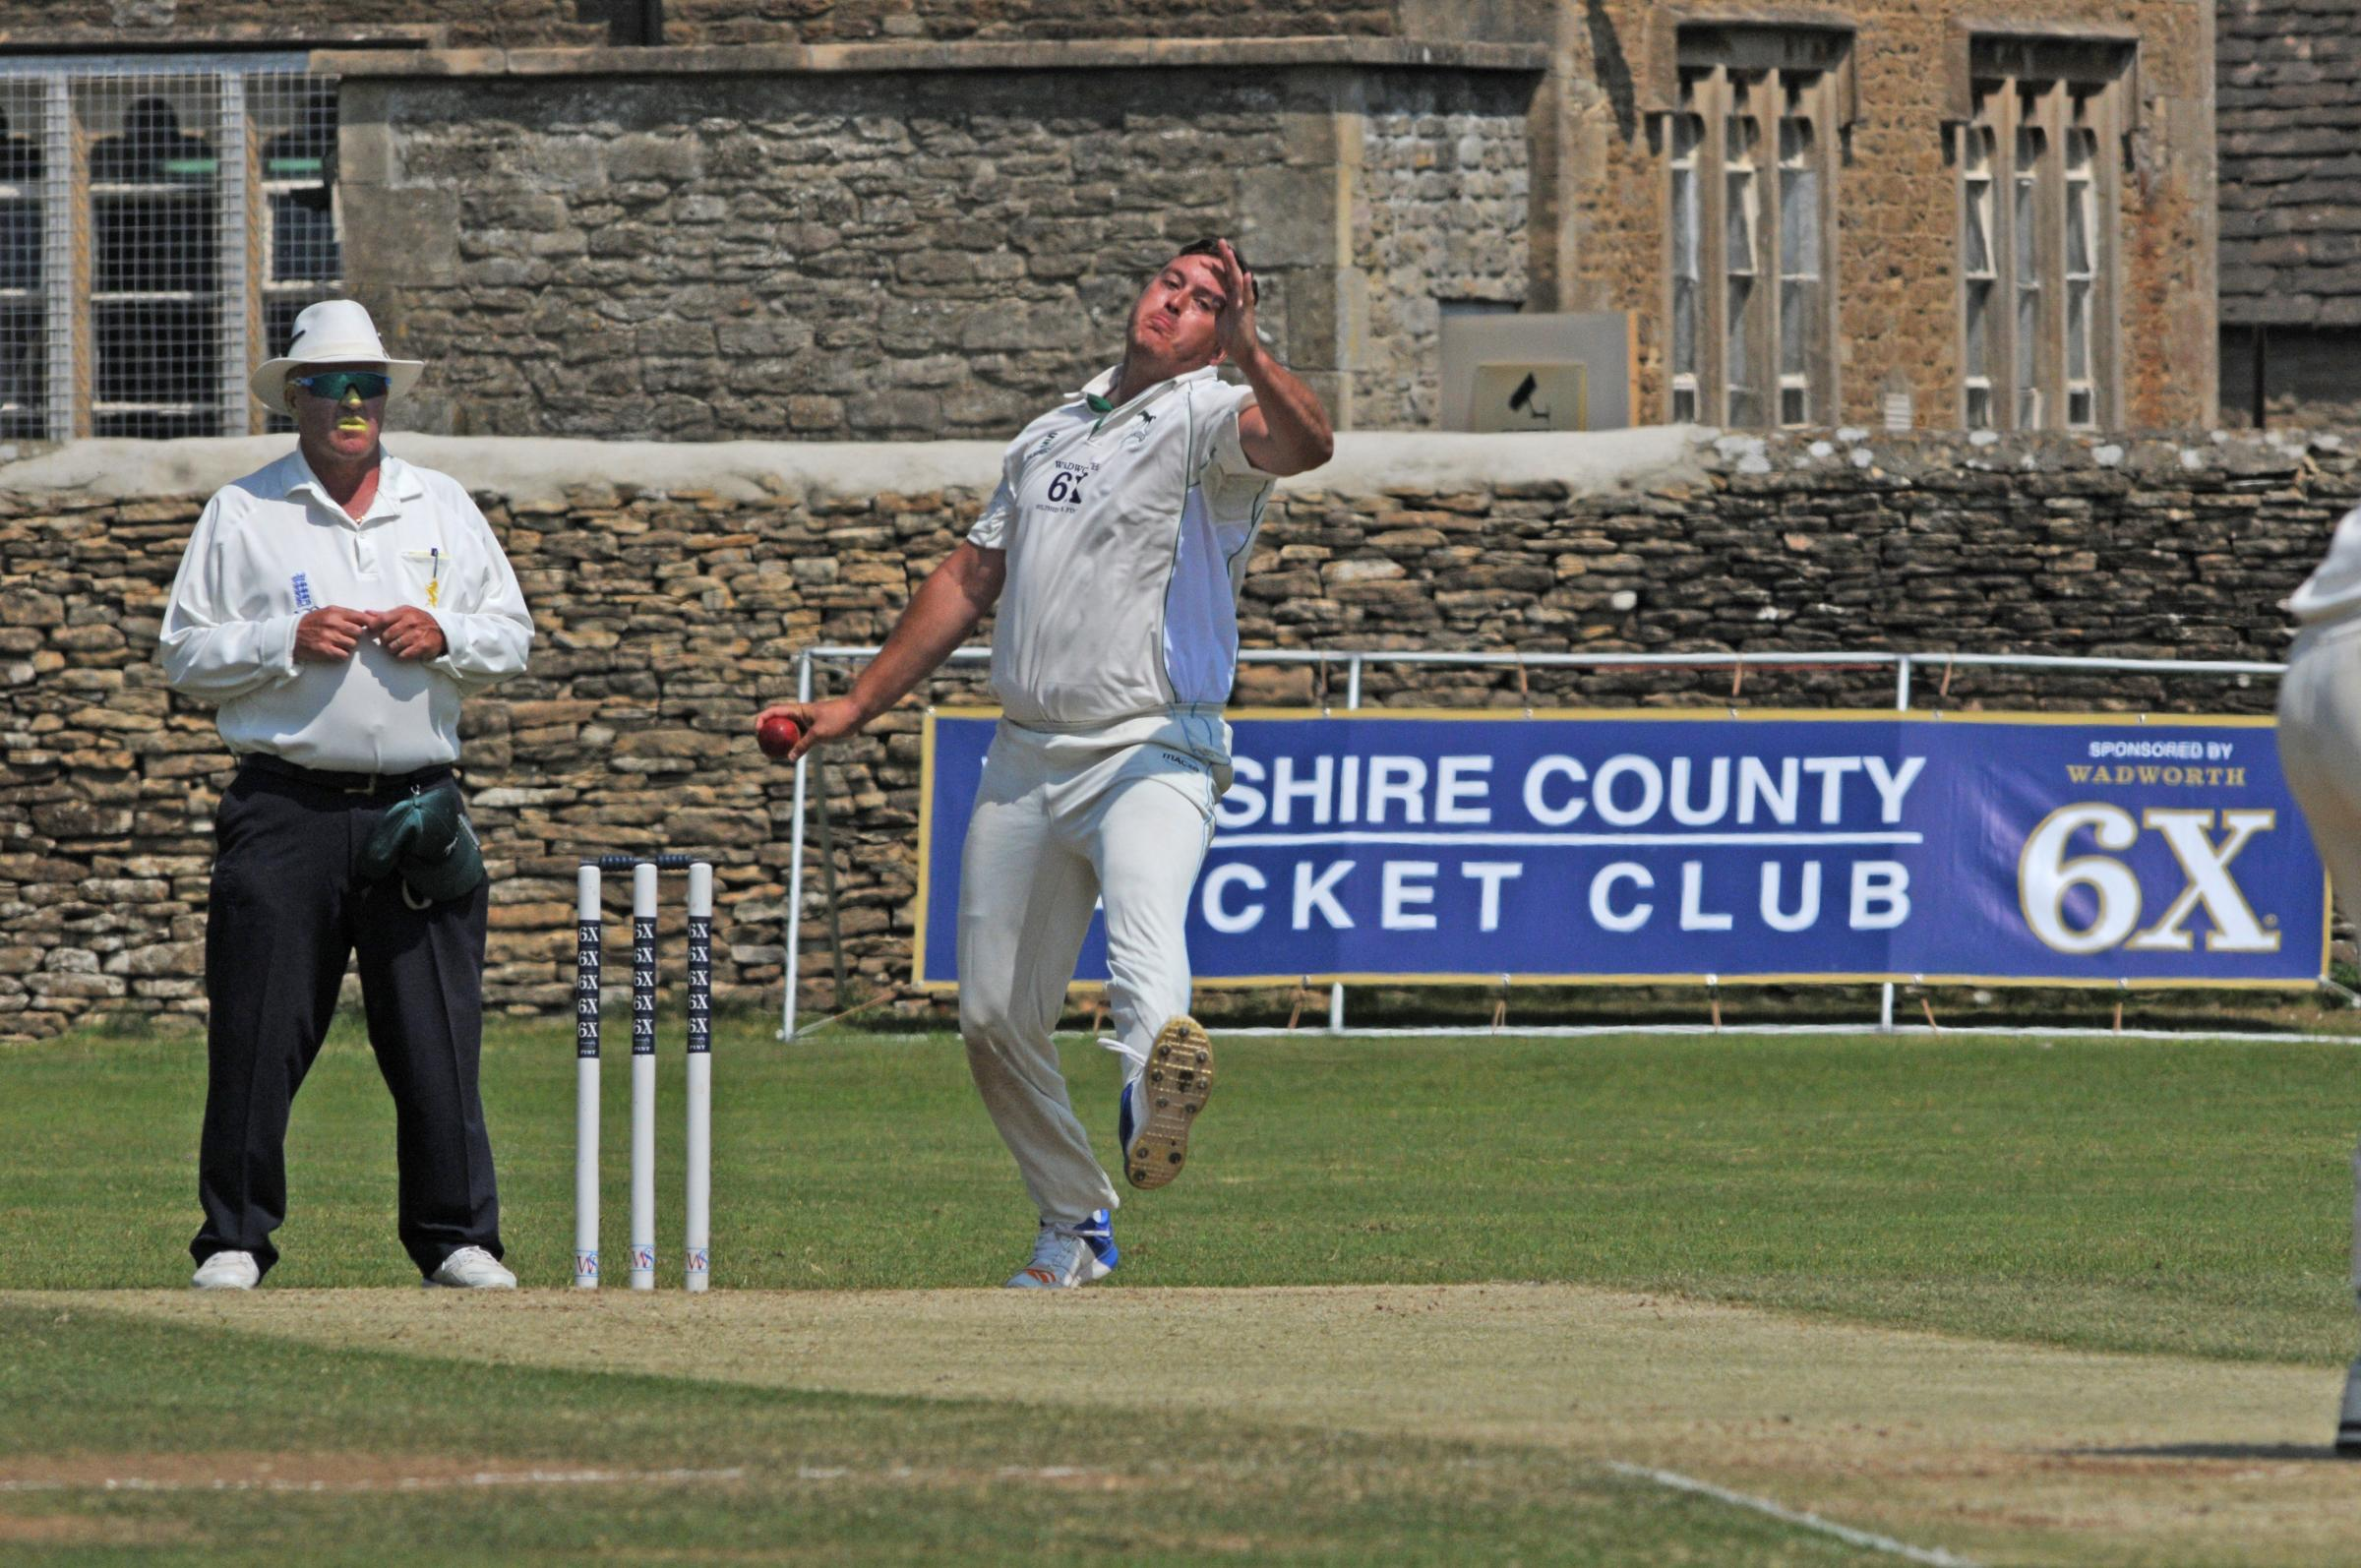 Swindon's Jake Goodwin took two wickets in the Devon reply